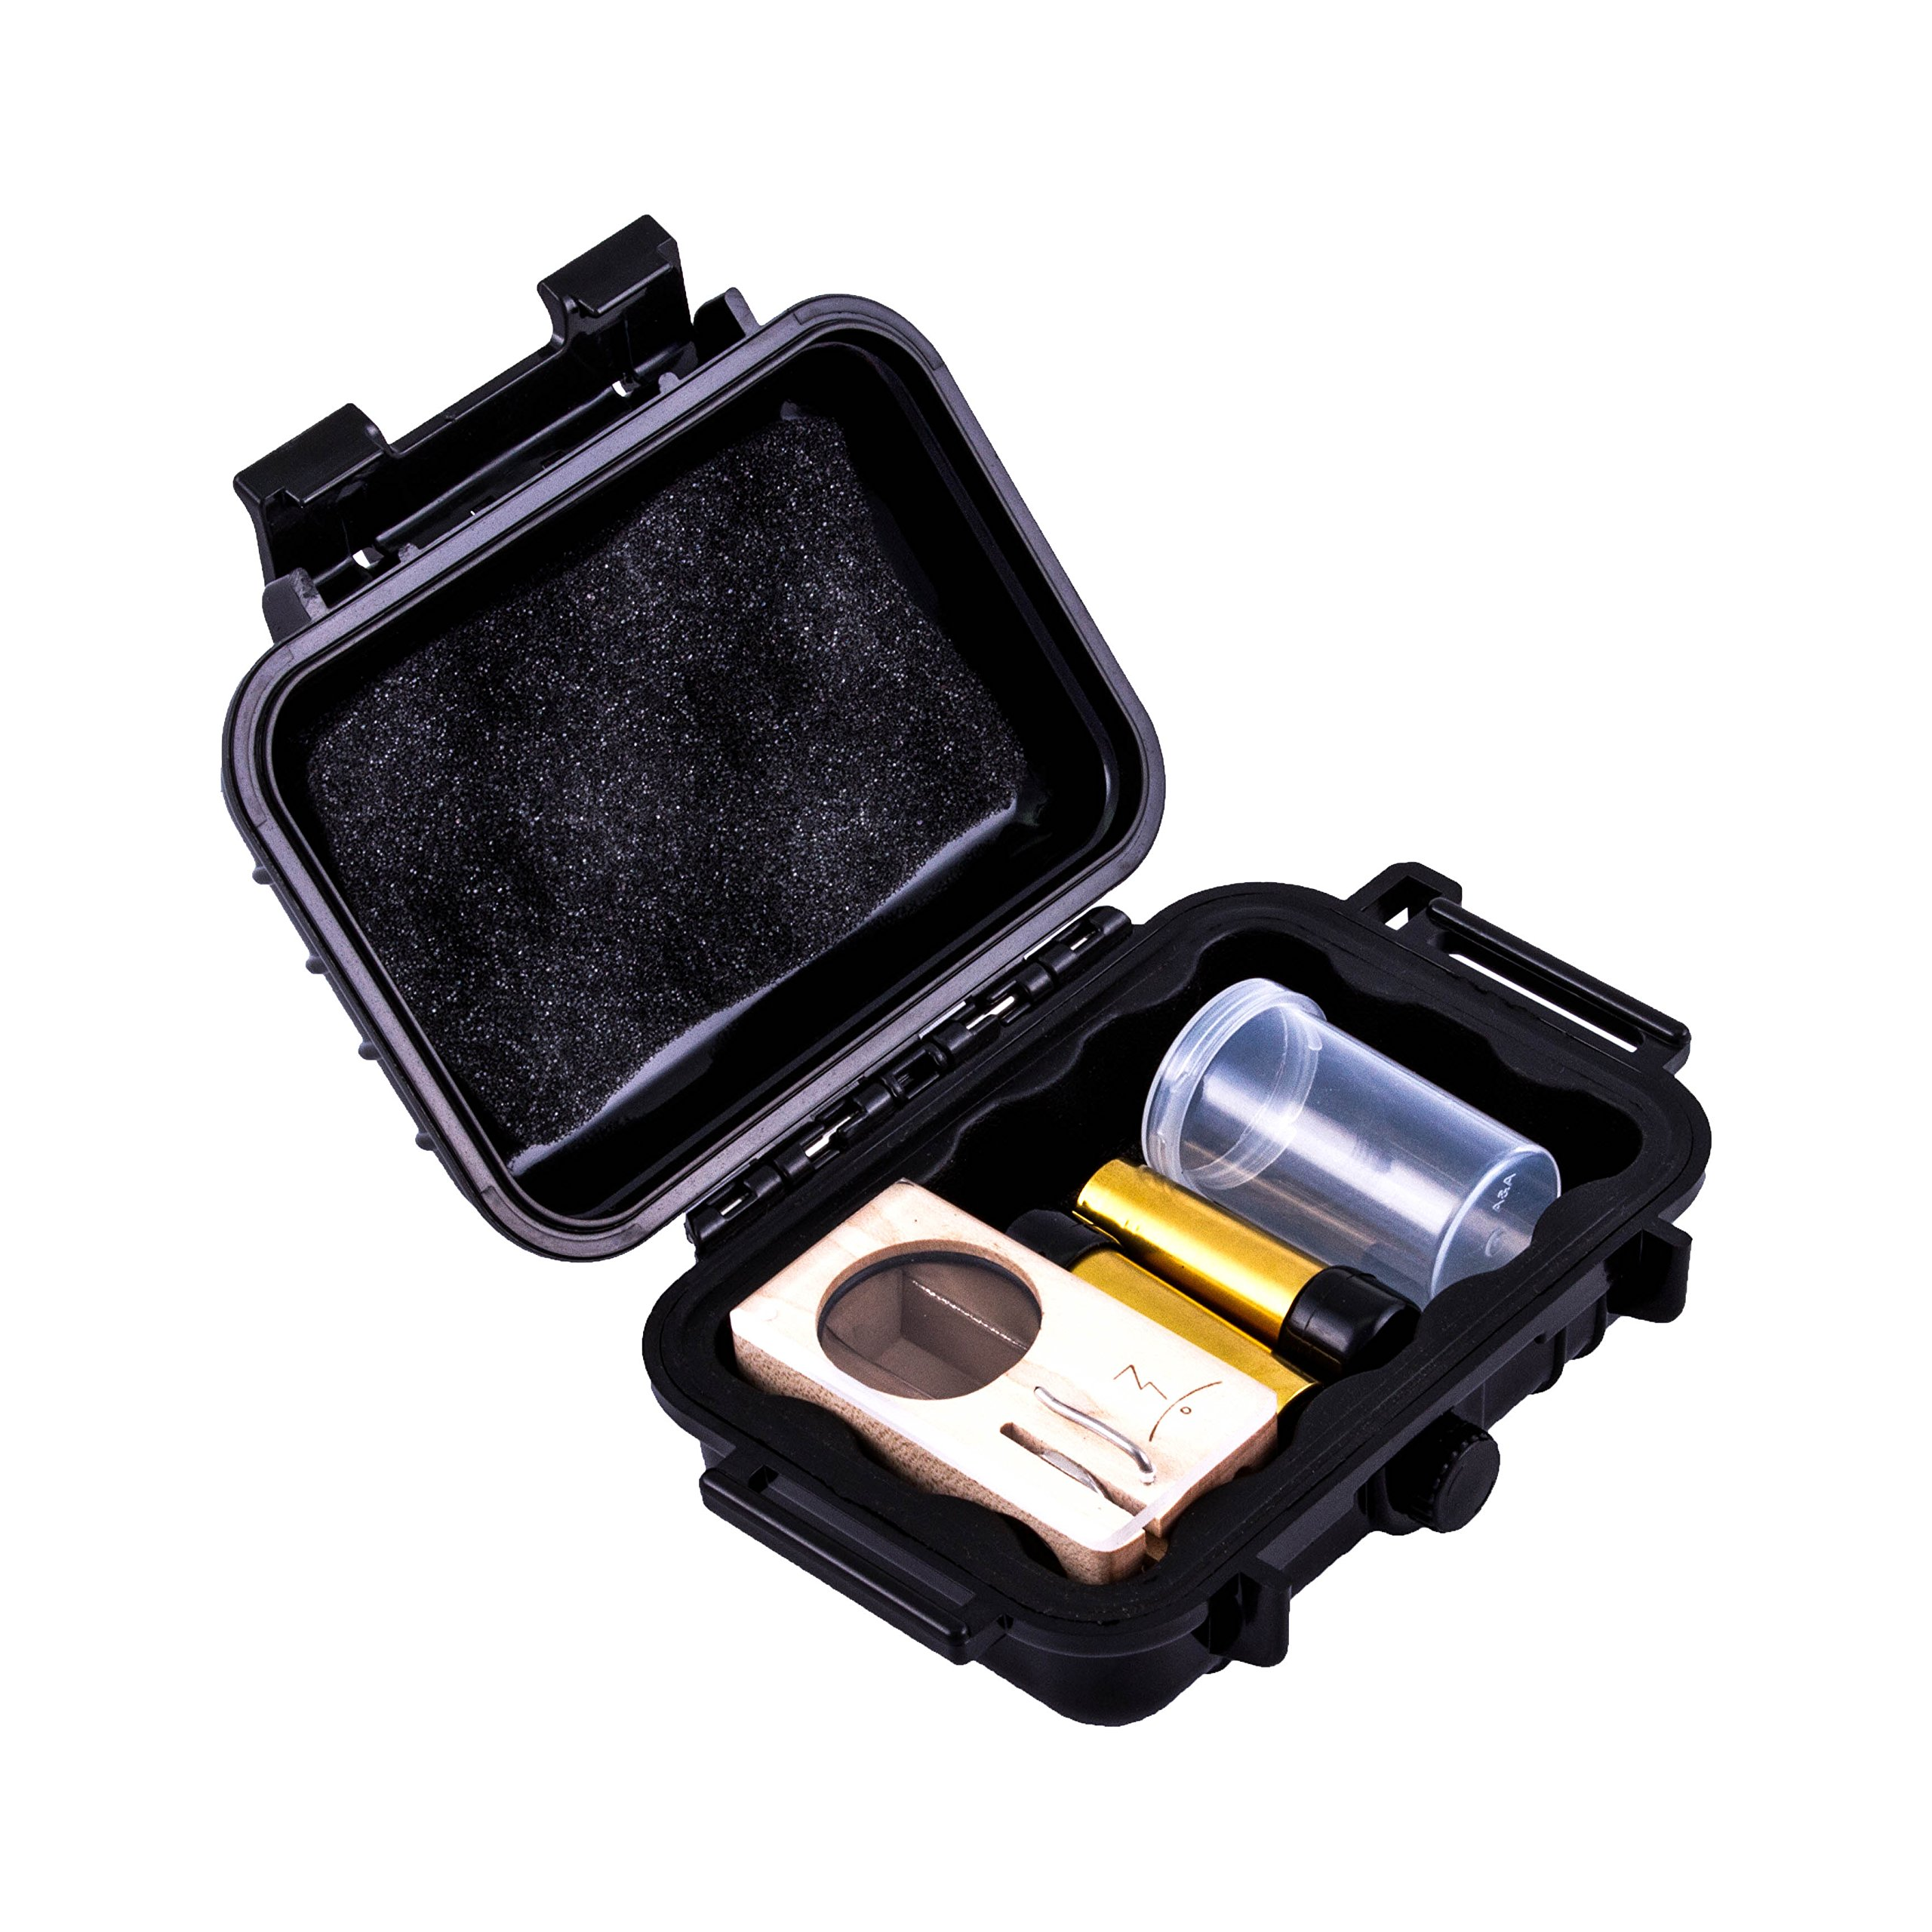 Cloud/Ten Smell Proof Case for Magic Flight Launch Box - Also Fits Two Batteries and The Included Herb Canister - 5'' Compact Design Discreetly Fits Magic Flight and Small Accessories